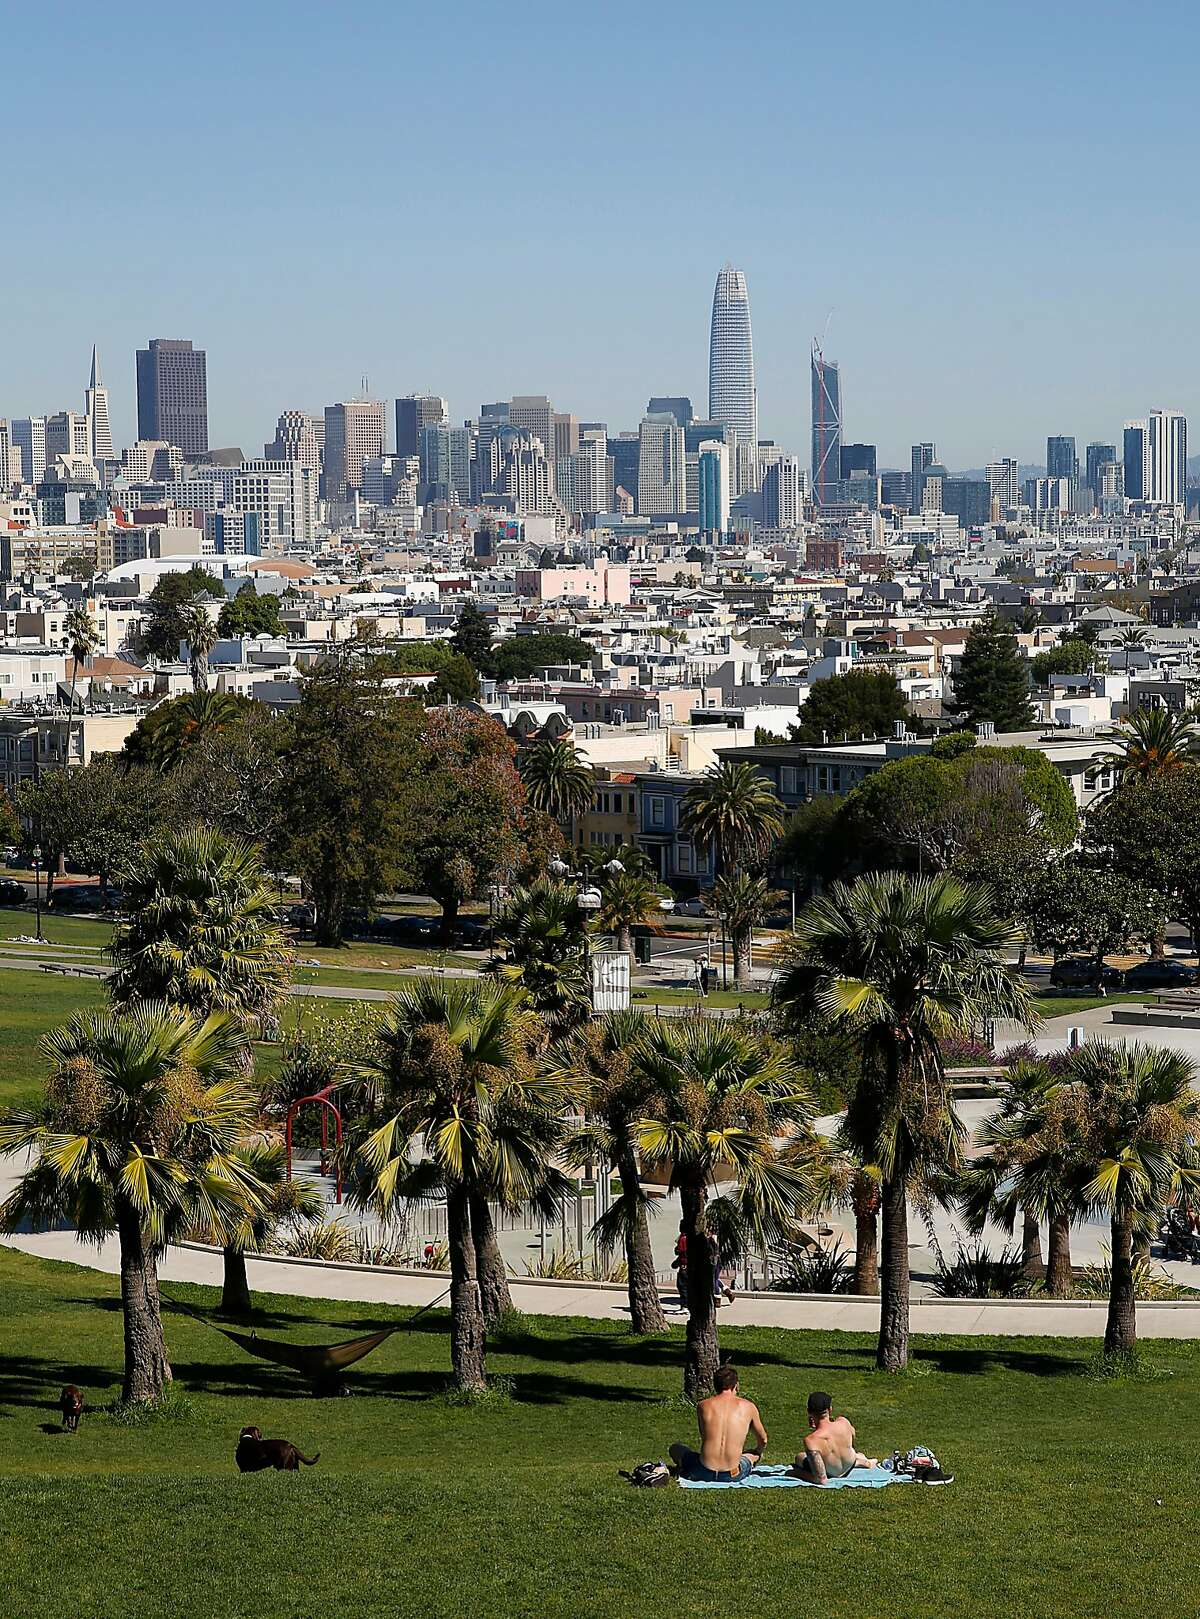 Jay Lisk and Michael Farr visiting on a road trip from Columbus, Ohio enjoy the noon hour at Dolores Park on Tuesday, September 26, 2017, in San Francisco, Calif.